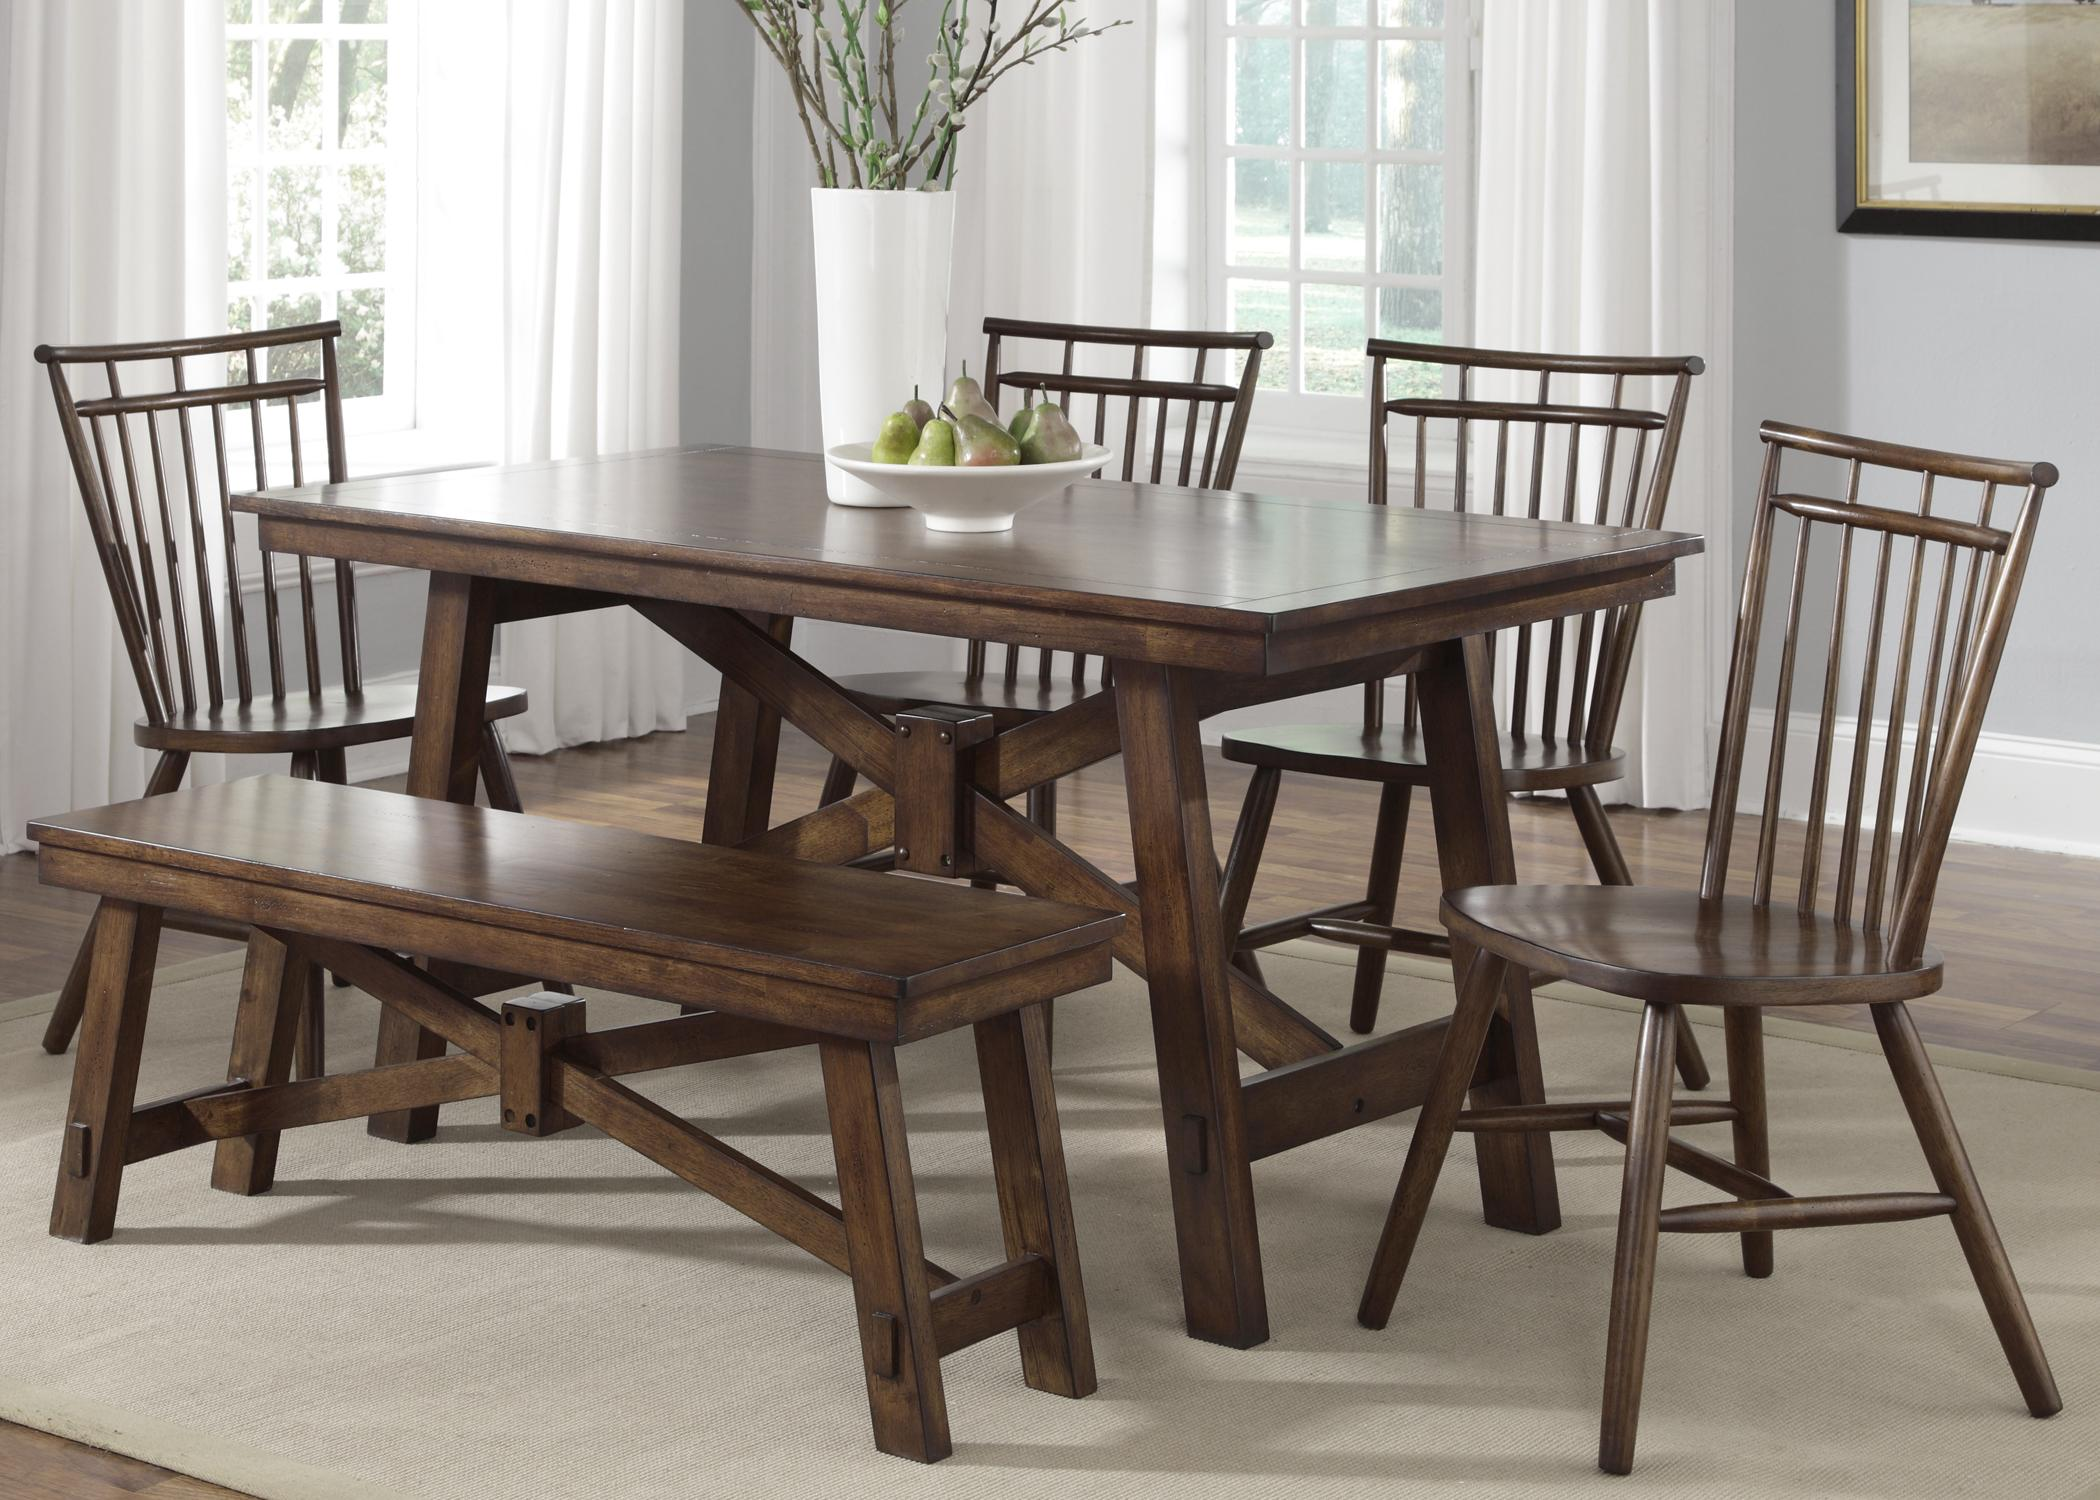 Creations II 6 Piece Table Set by Liberty Furniture at Dinette Depot